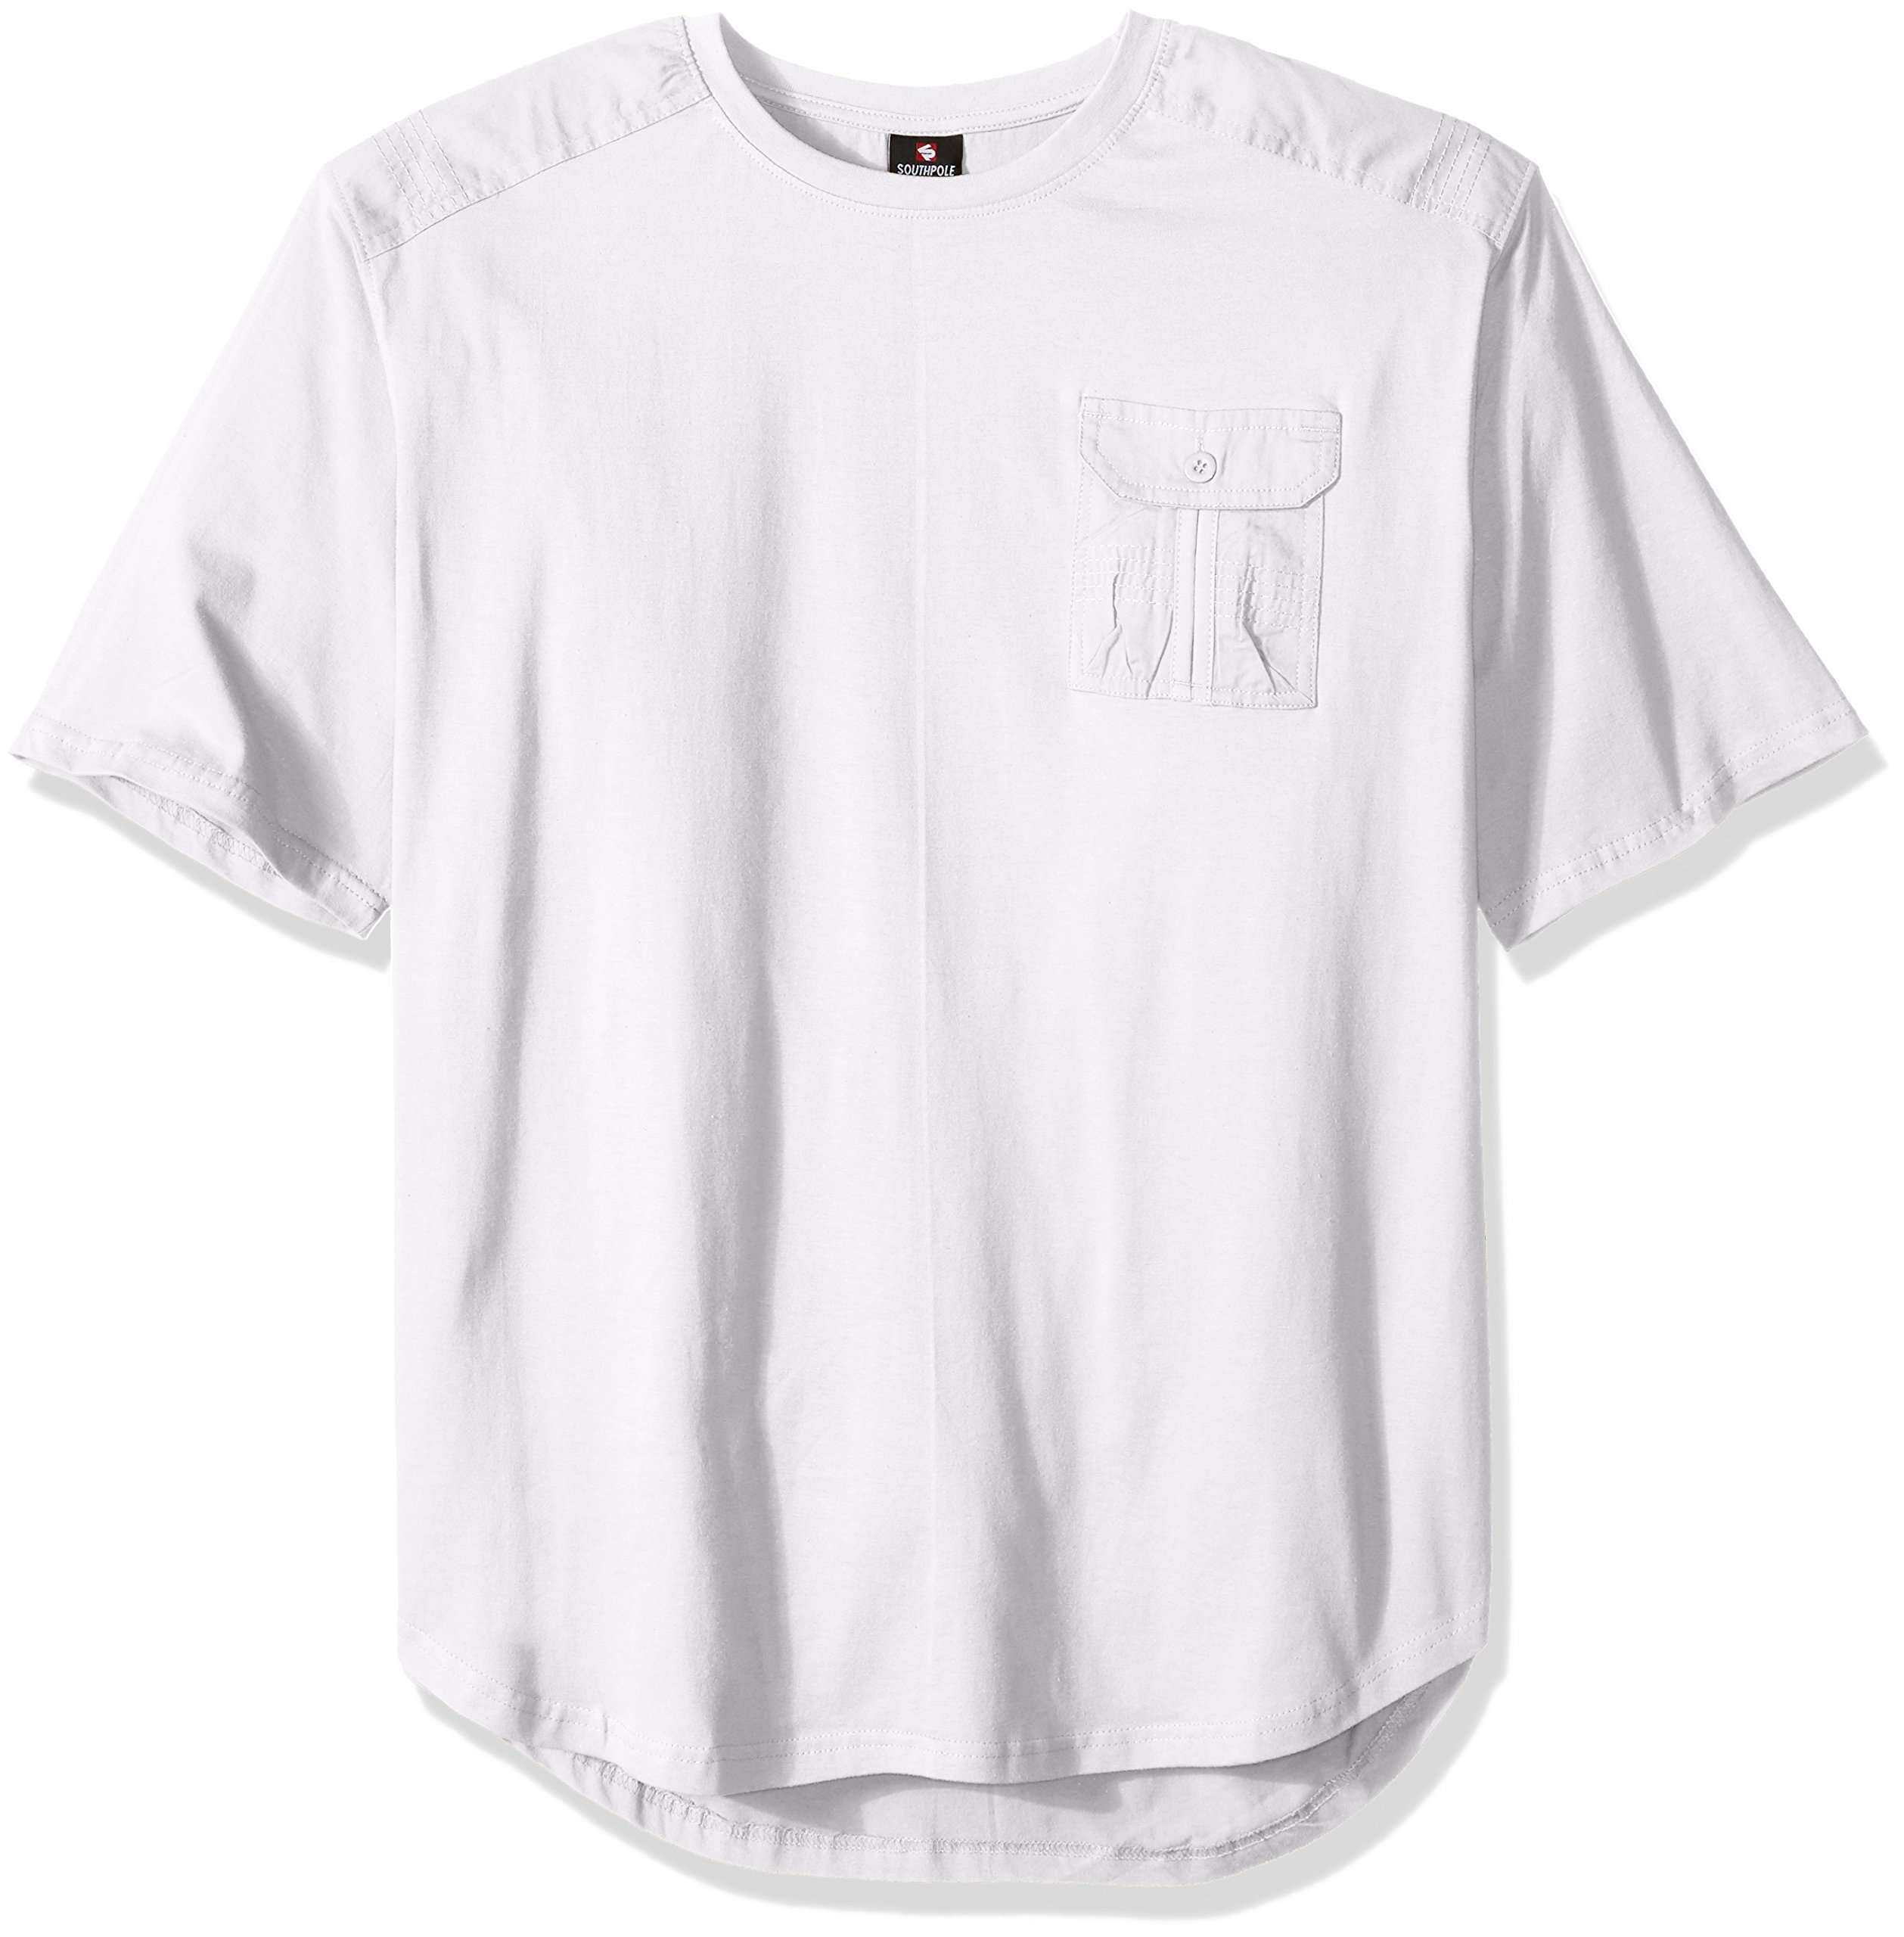 Southpole Men's Big and Tall Short Sleeve Scallop Tee with Fine Twill Detail, White, 4XB